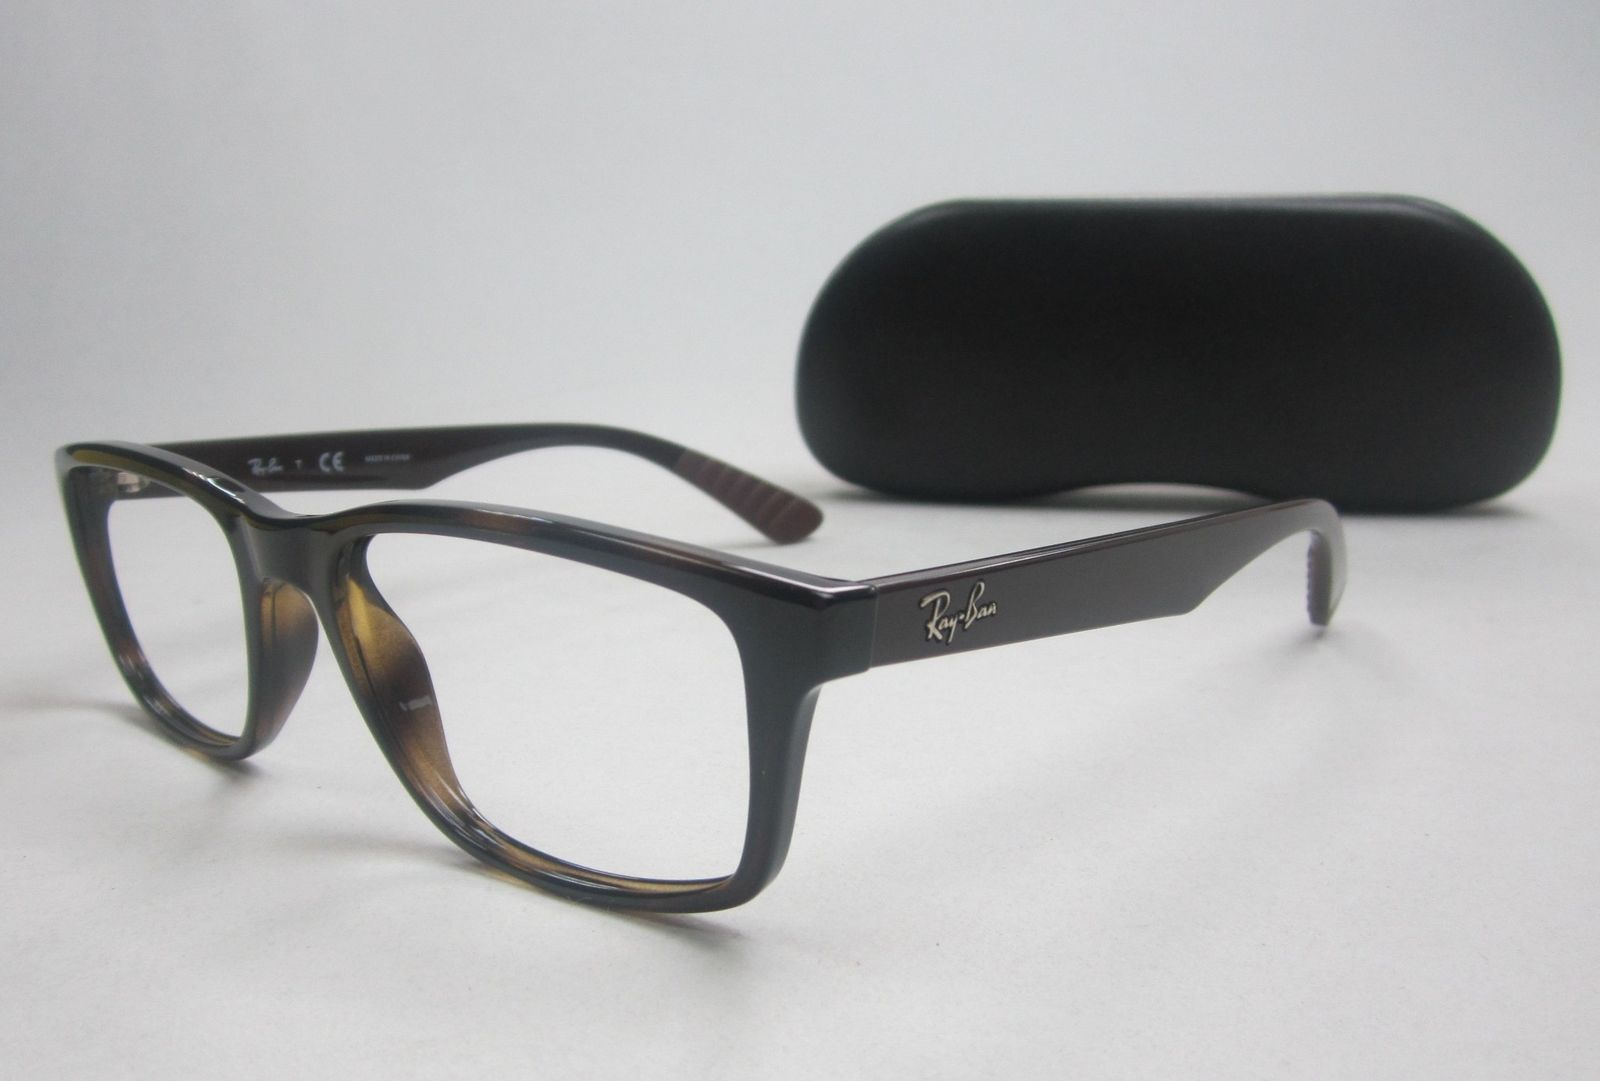 9921550159d3d RayBan RB 7063 5577 Eyeglasses 54 18 145 and 50 similar items